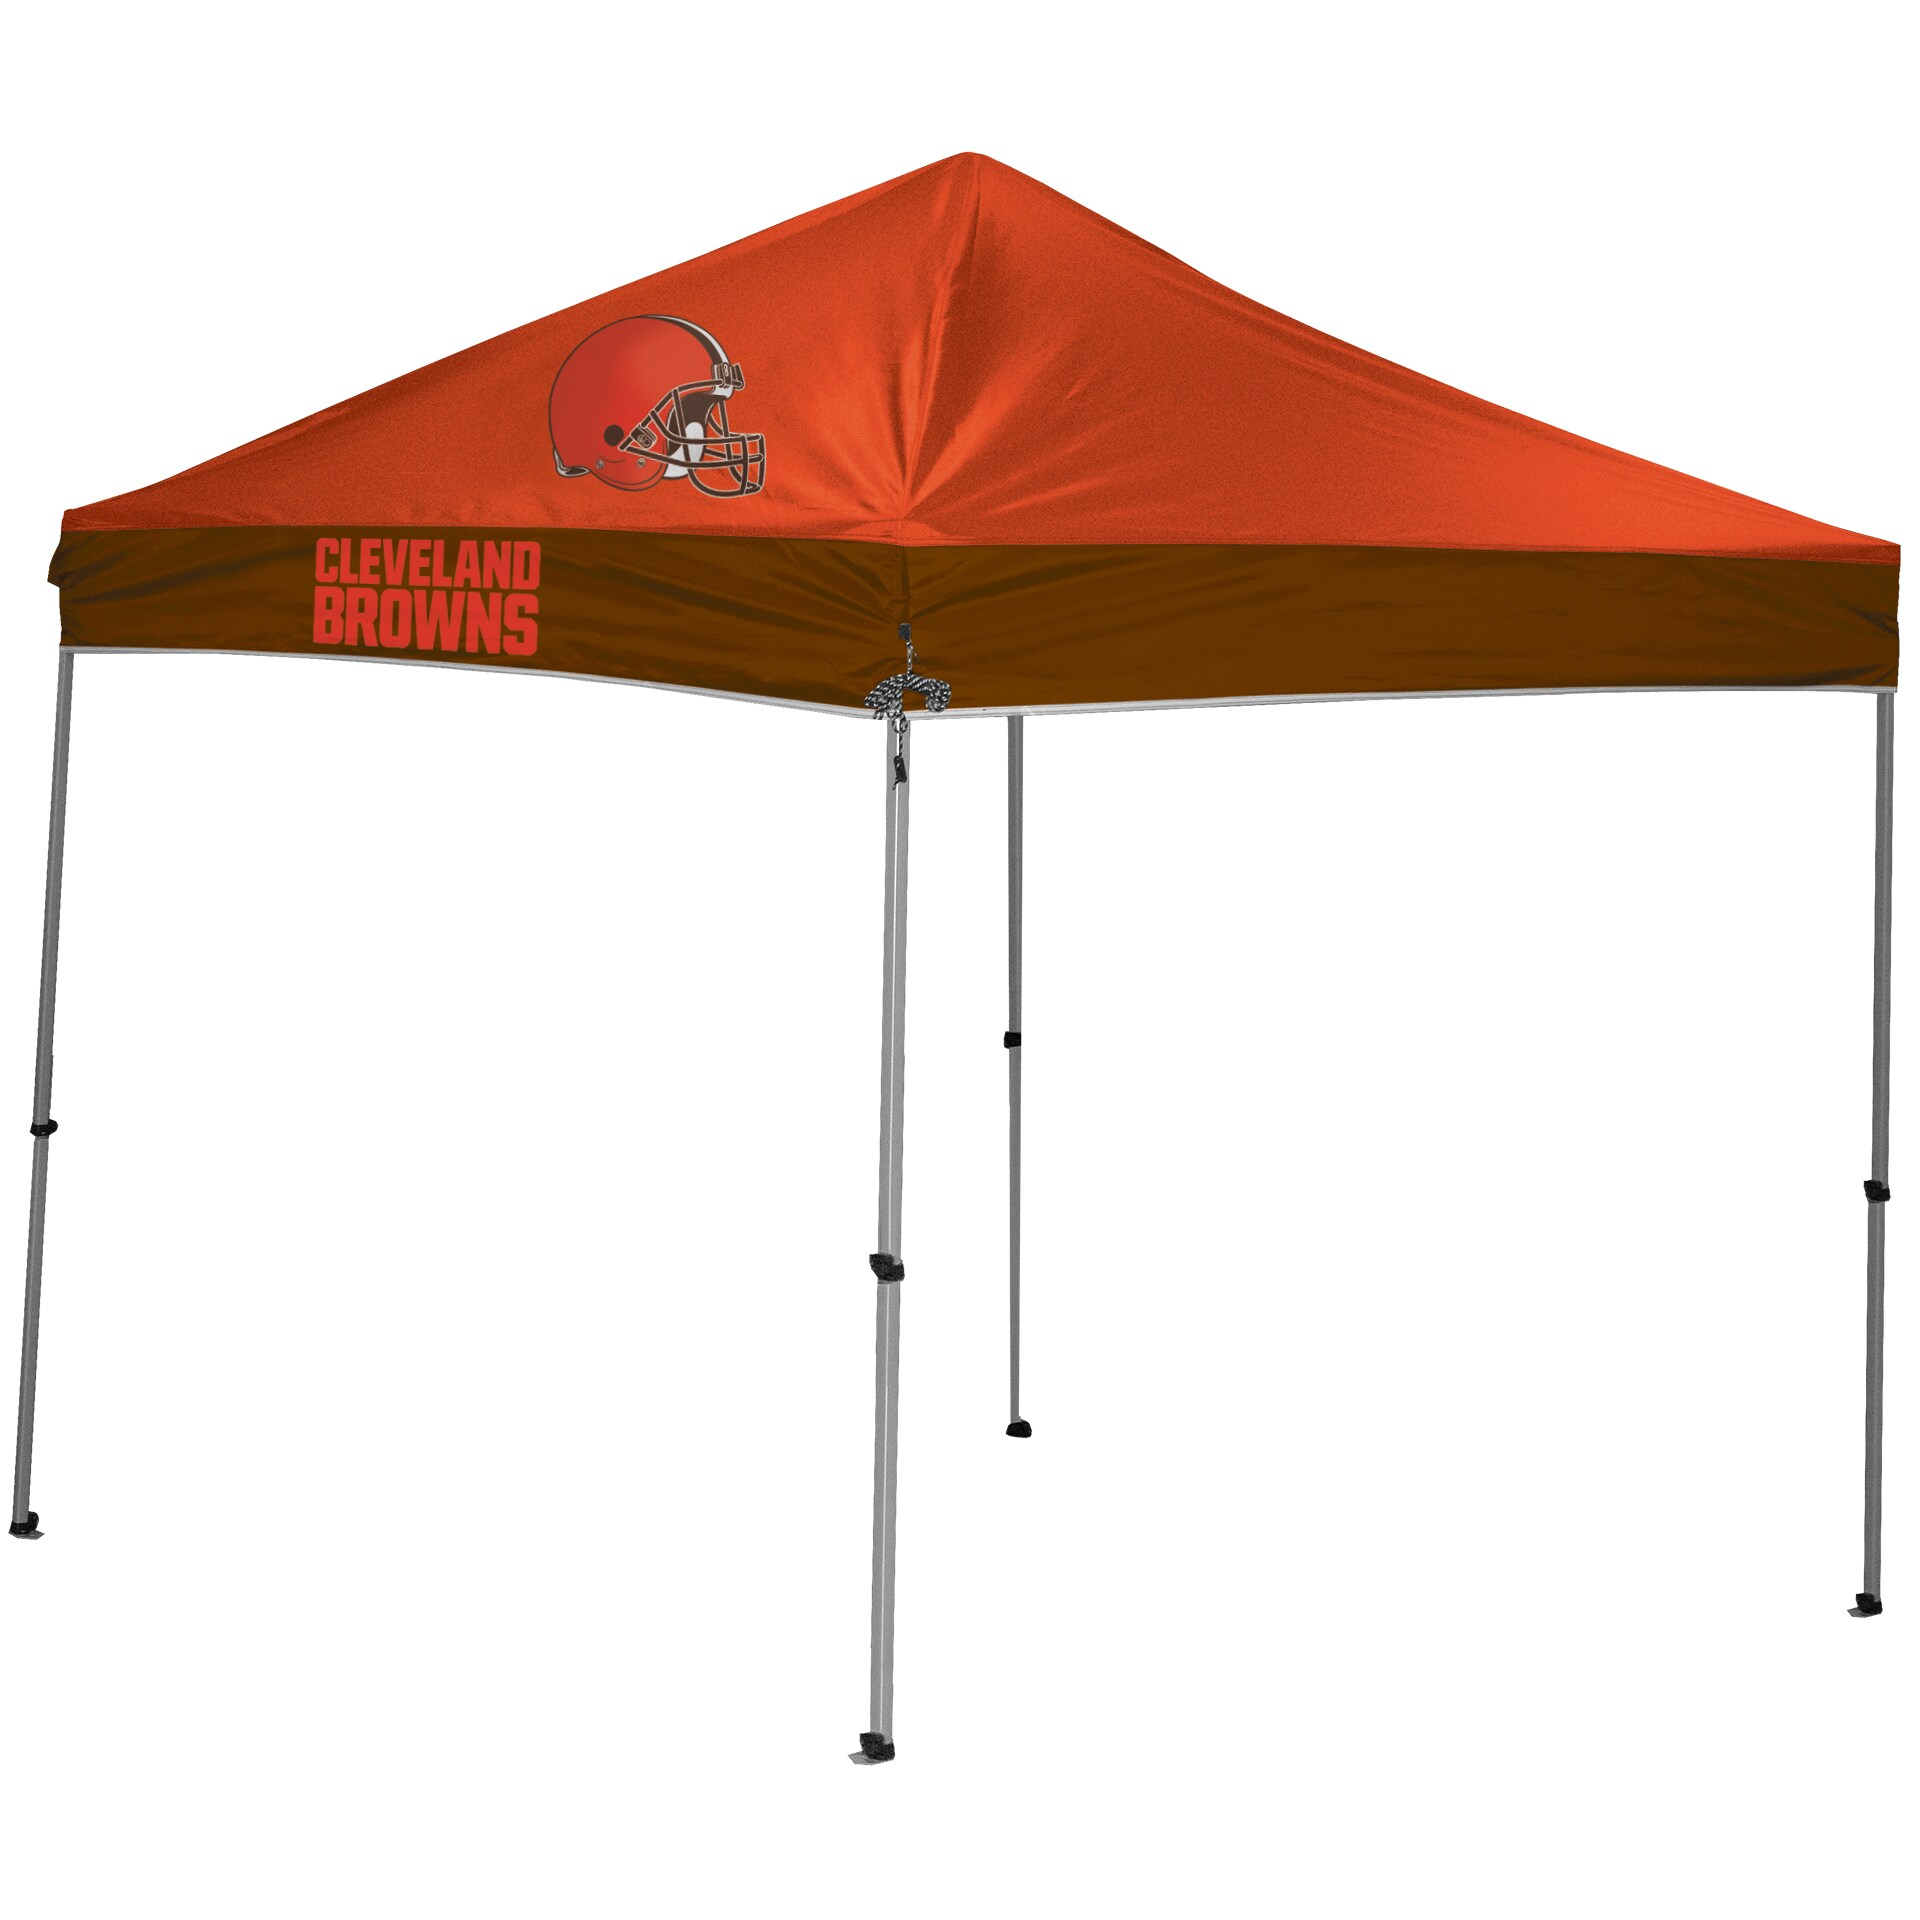 Cleveland Browns 9' x 9' 2-Tone Straight Leg Canopy Tent